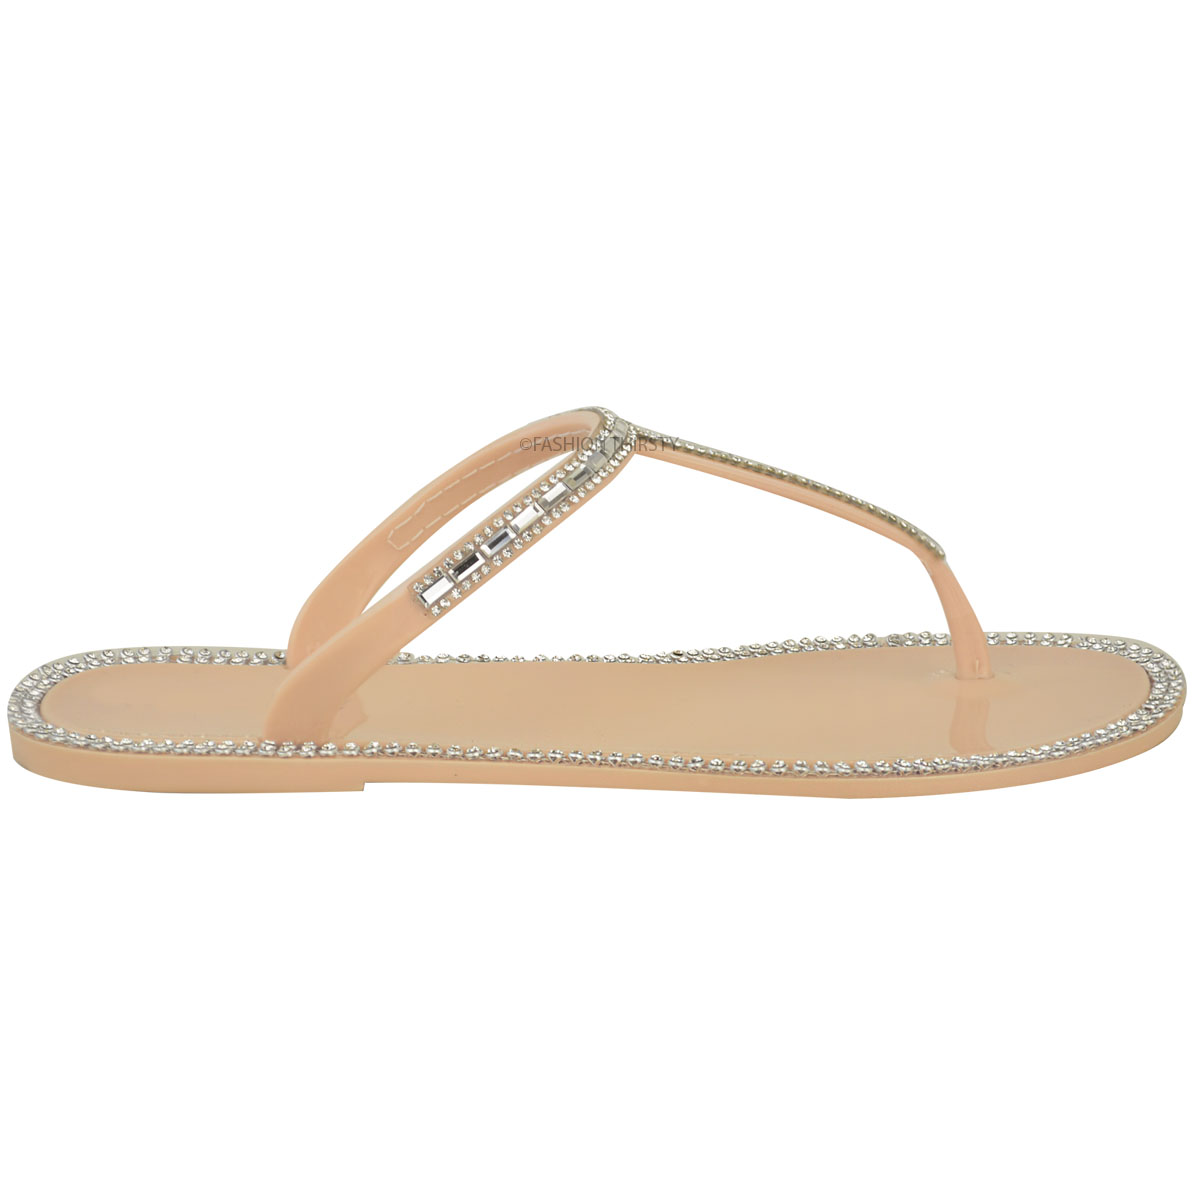 ad703df985d Details about Womens Ladies Diamante T Bar Flat Strappy Jelly Sandals Flip  Flops Holiday Size